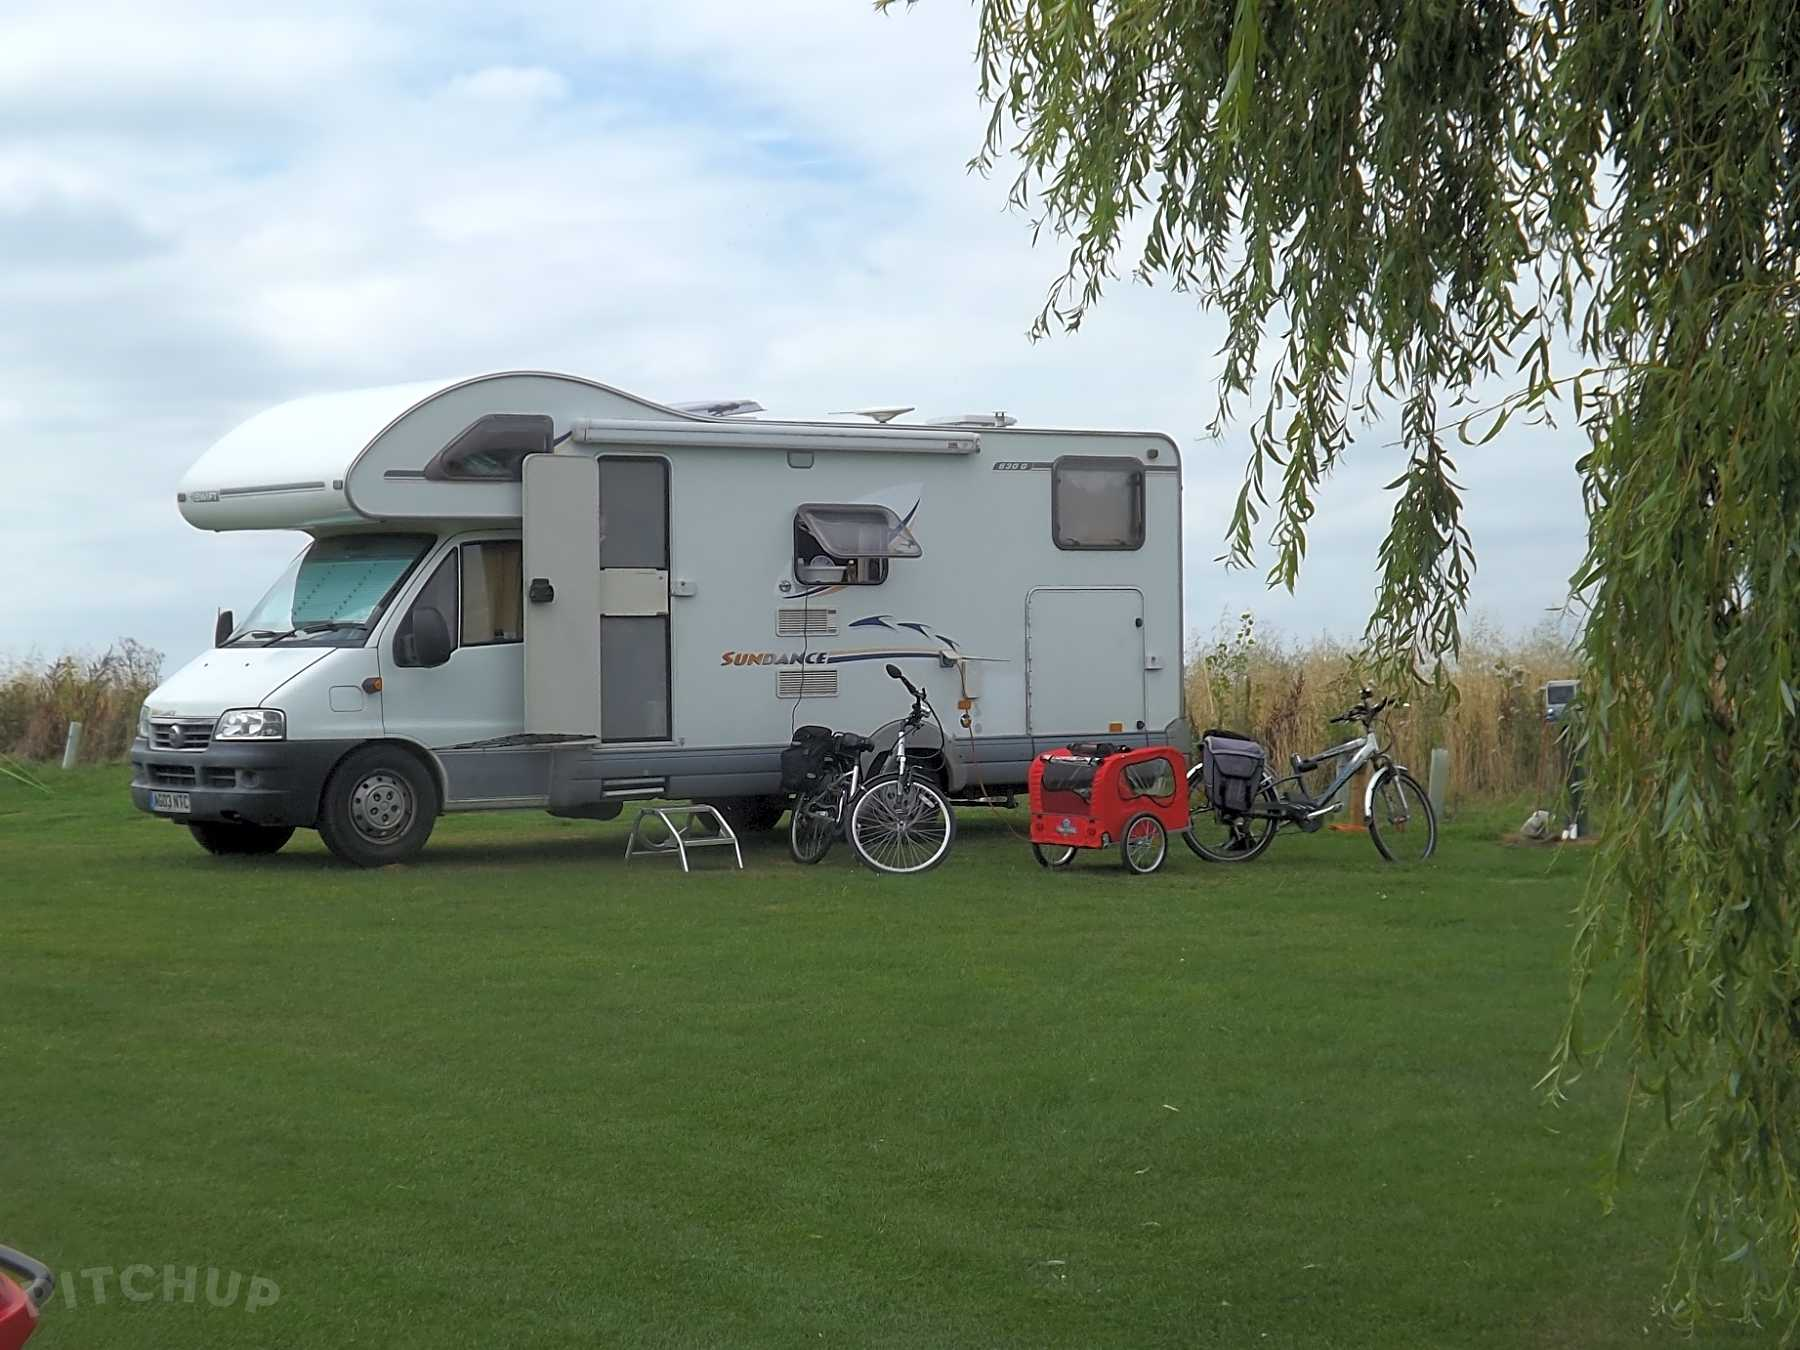 Find Cheap Tent Camping Sites in Wiltshire - Pitchup®